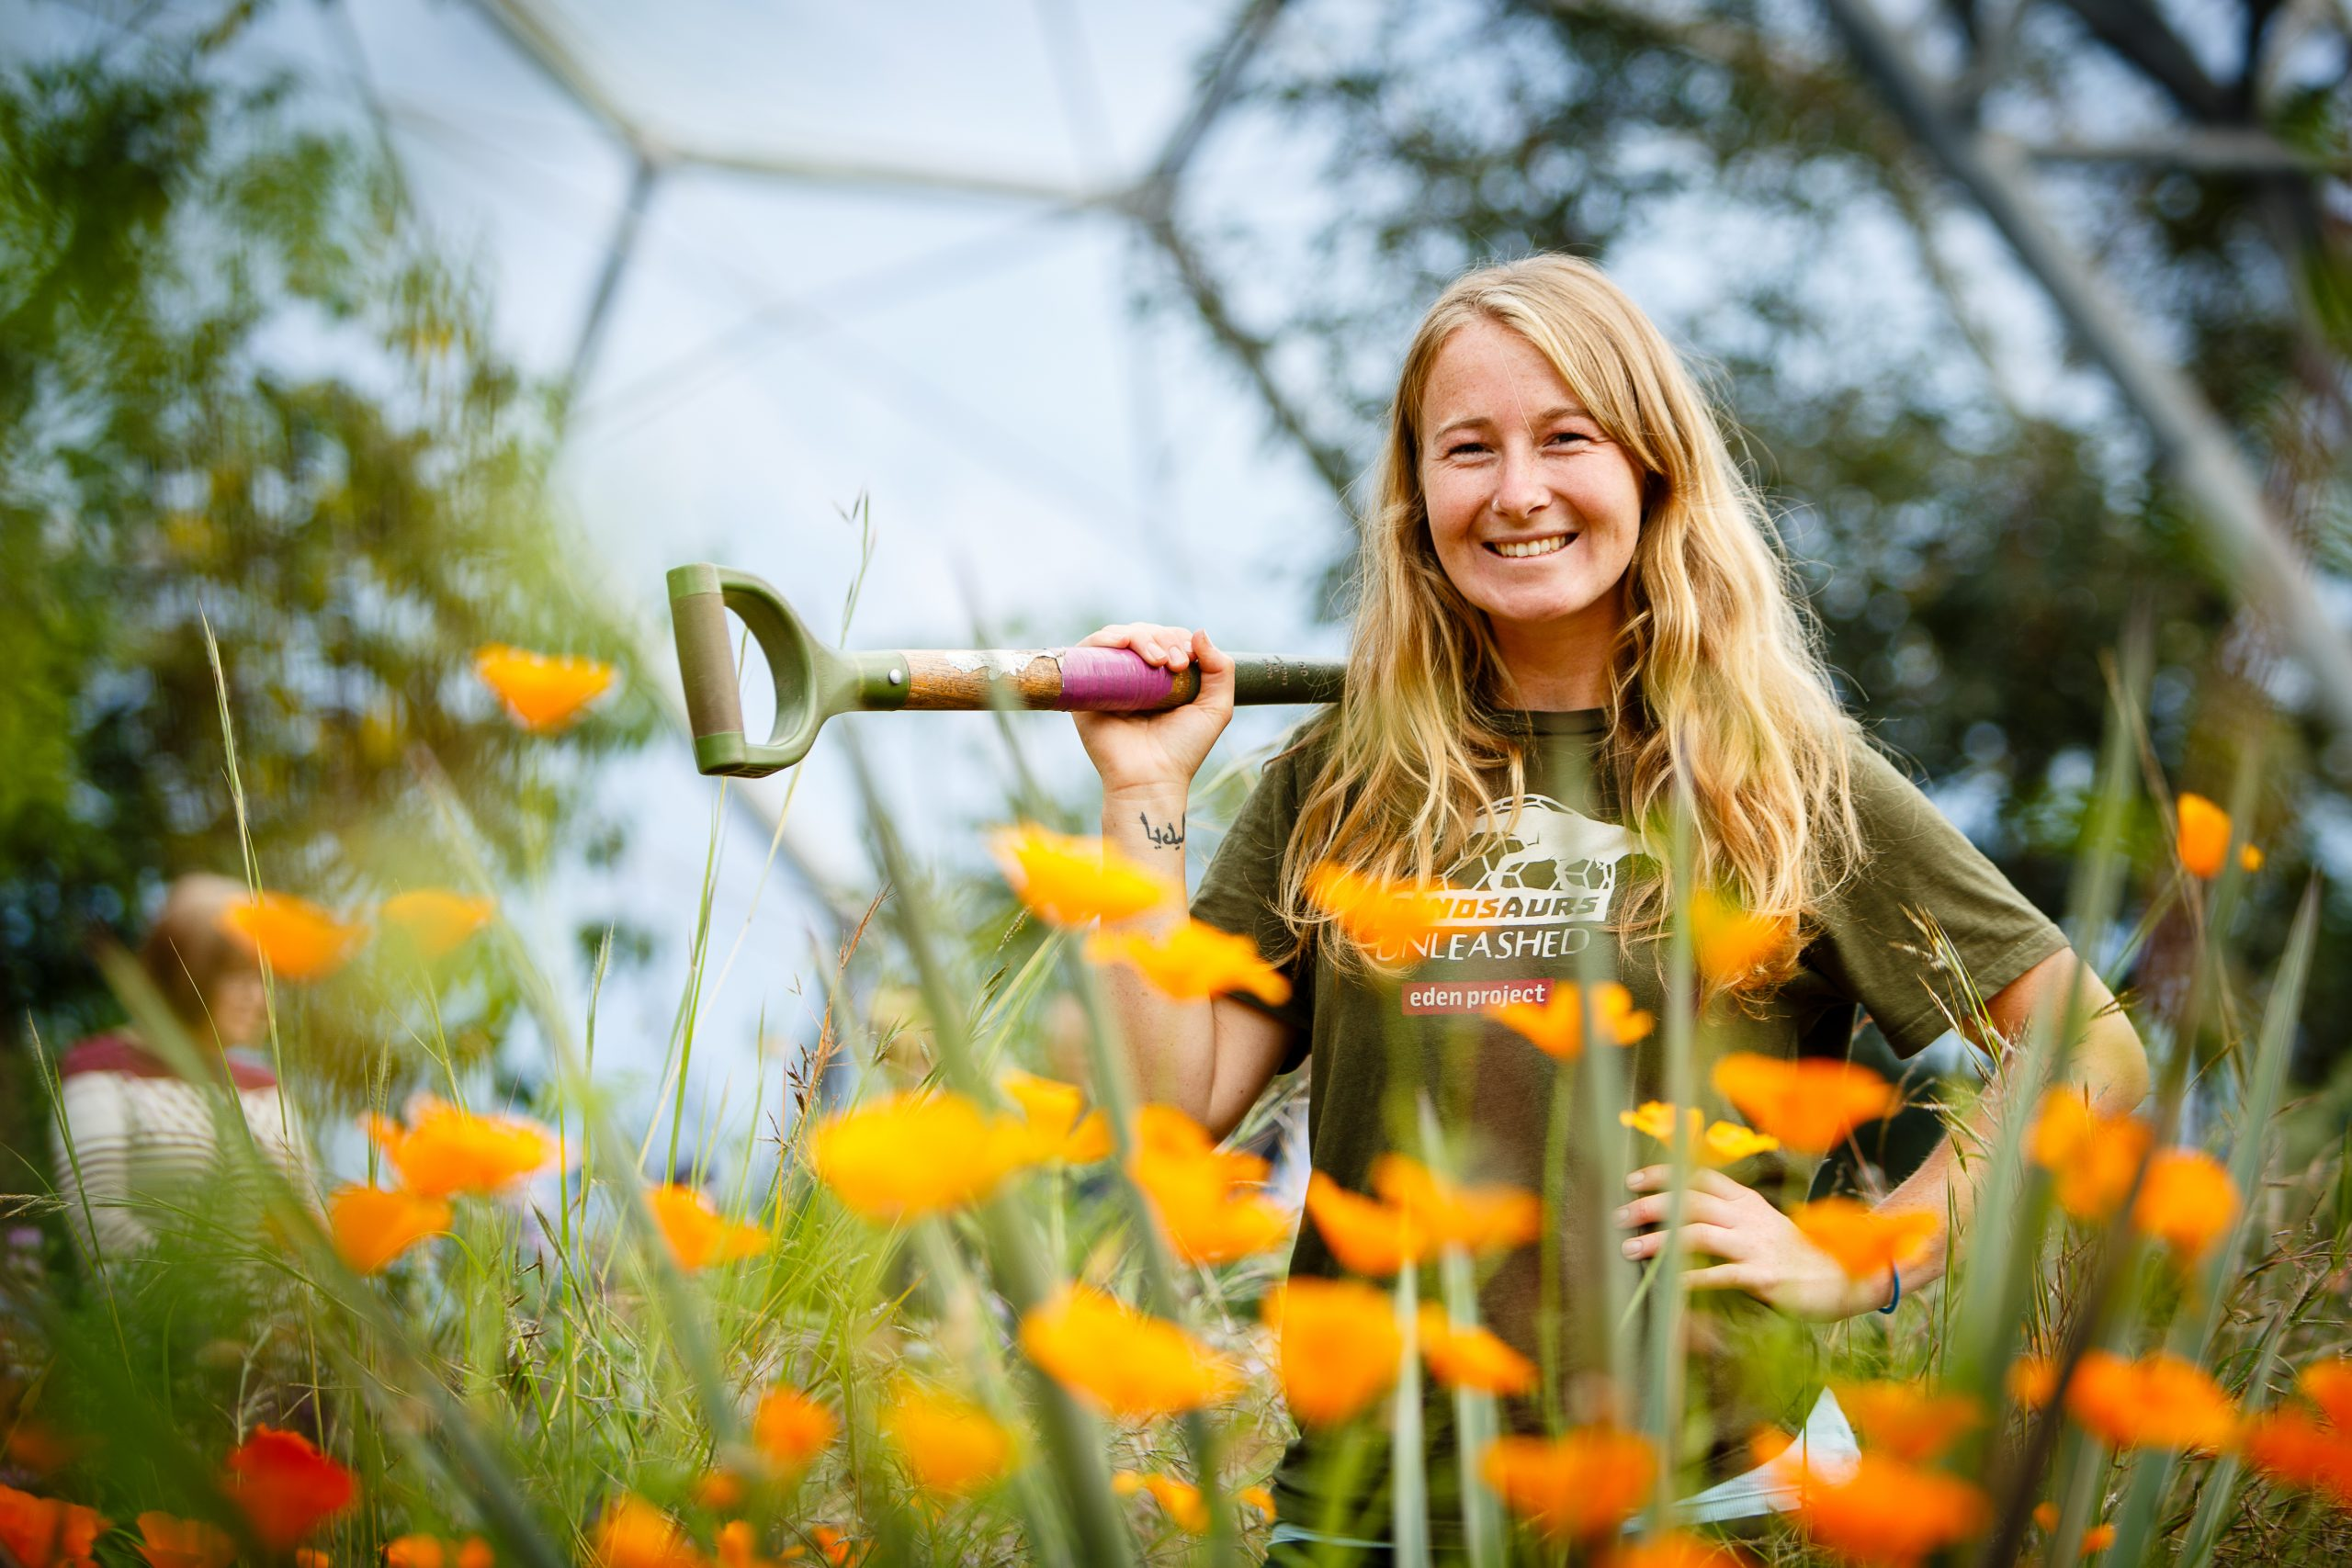 Female student posing behind orange flowers in a biome at Eden Project